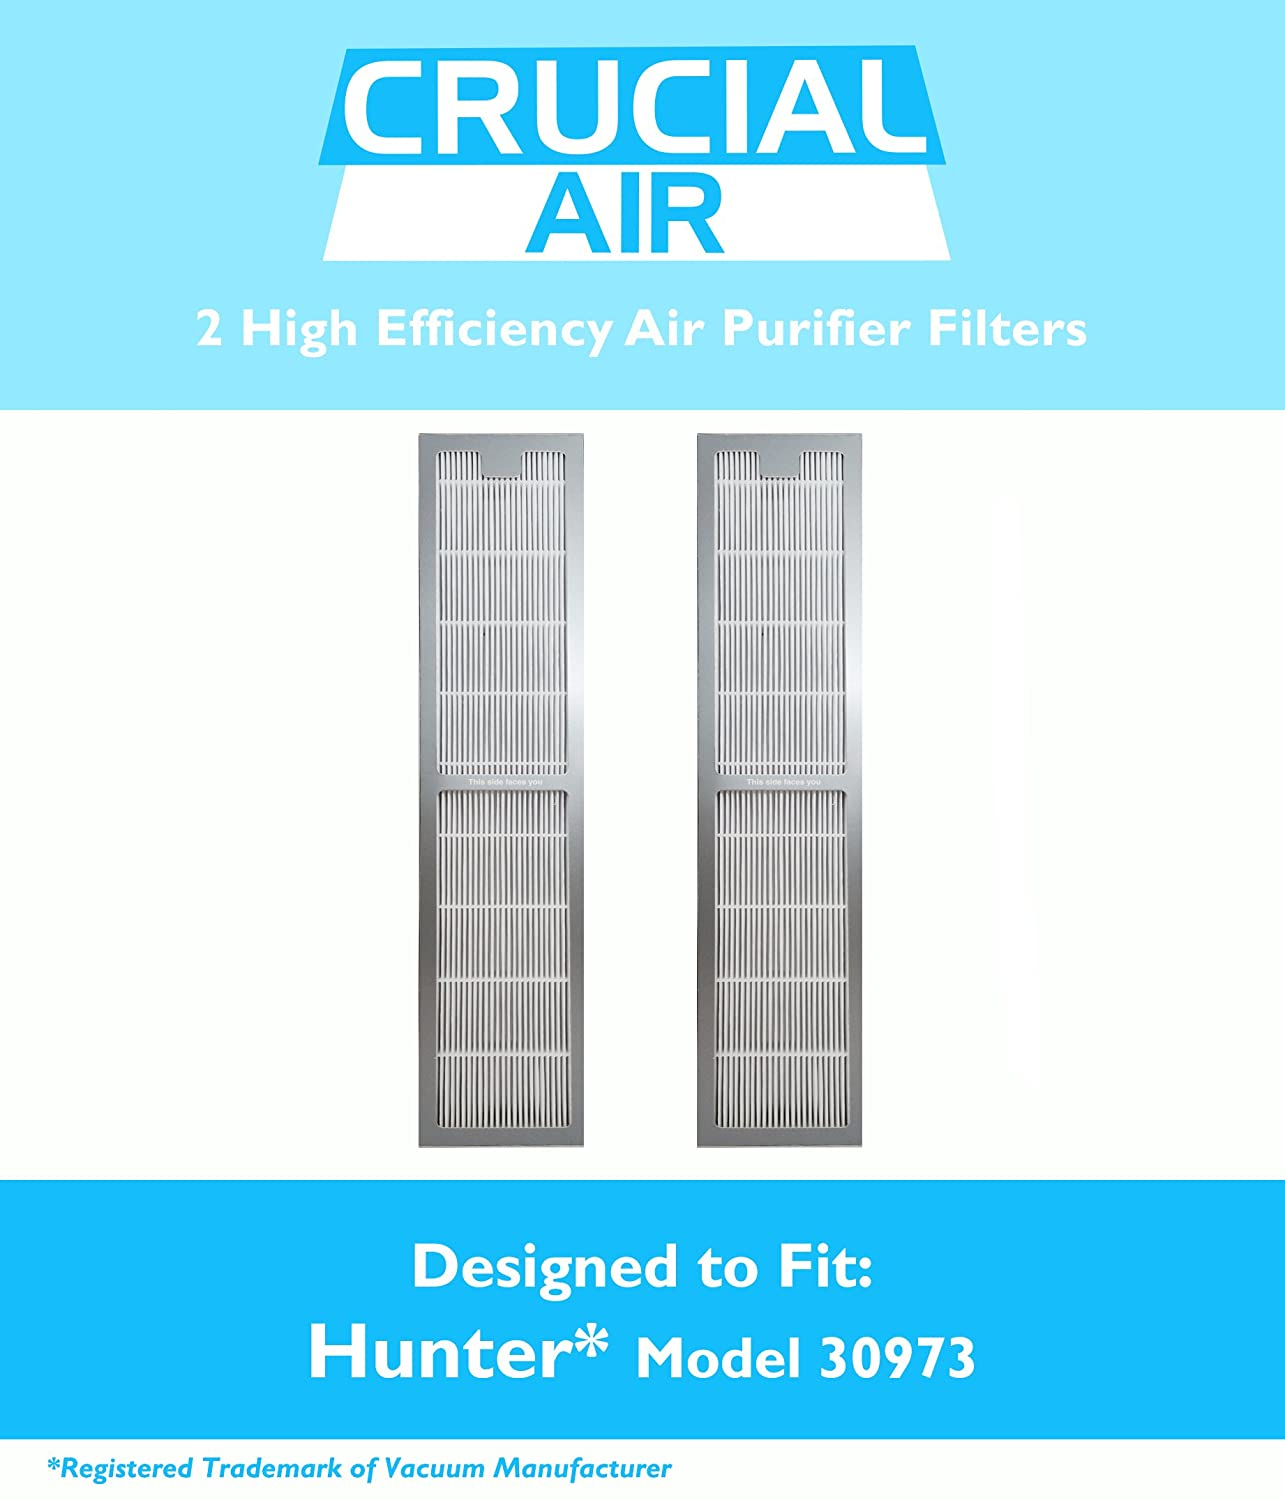 amazon com 2 hunter 30973 air purifier filters fit 30890 30895 rh amazon com Hunter Ceiling Fan Wiring Schematic Hunter Ceiling Fan Wiring Schematic